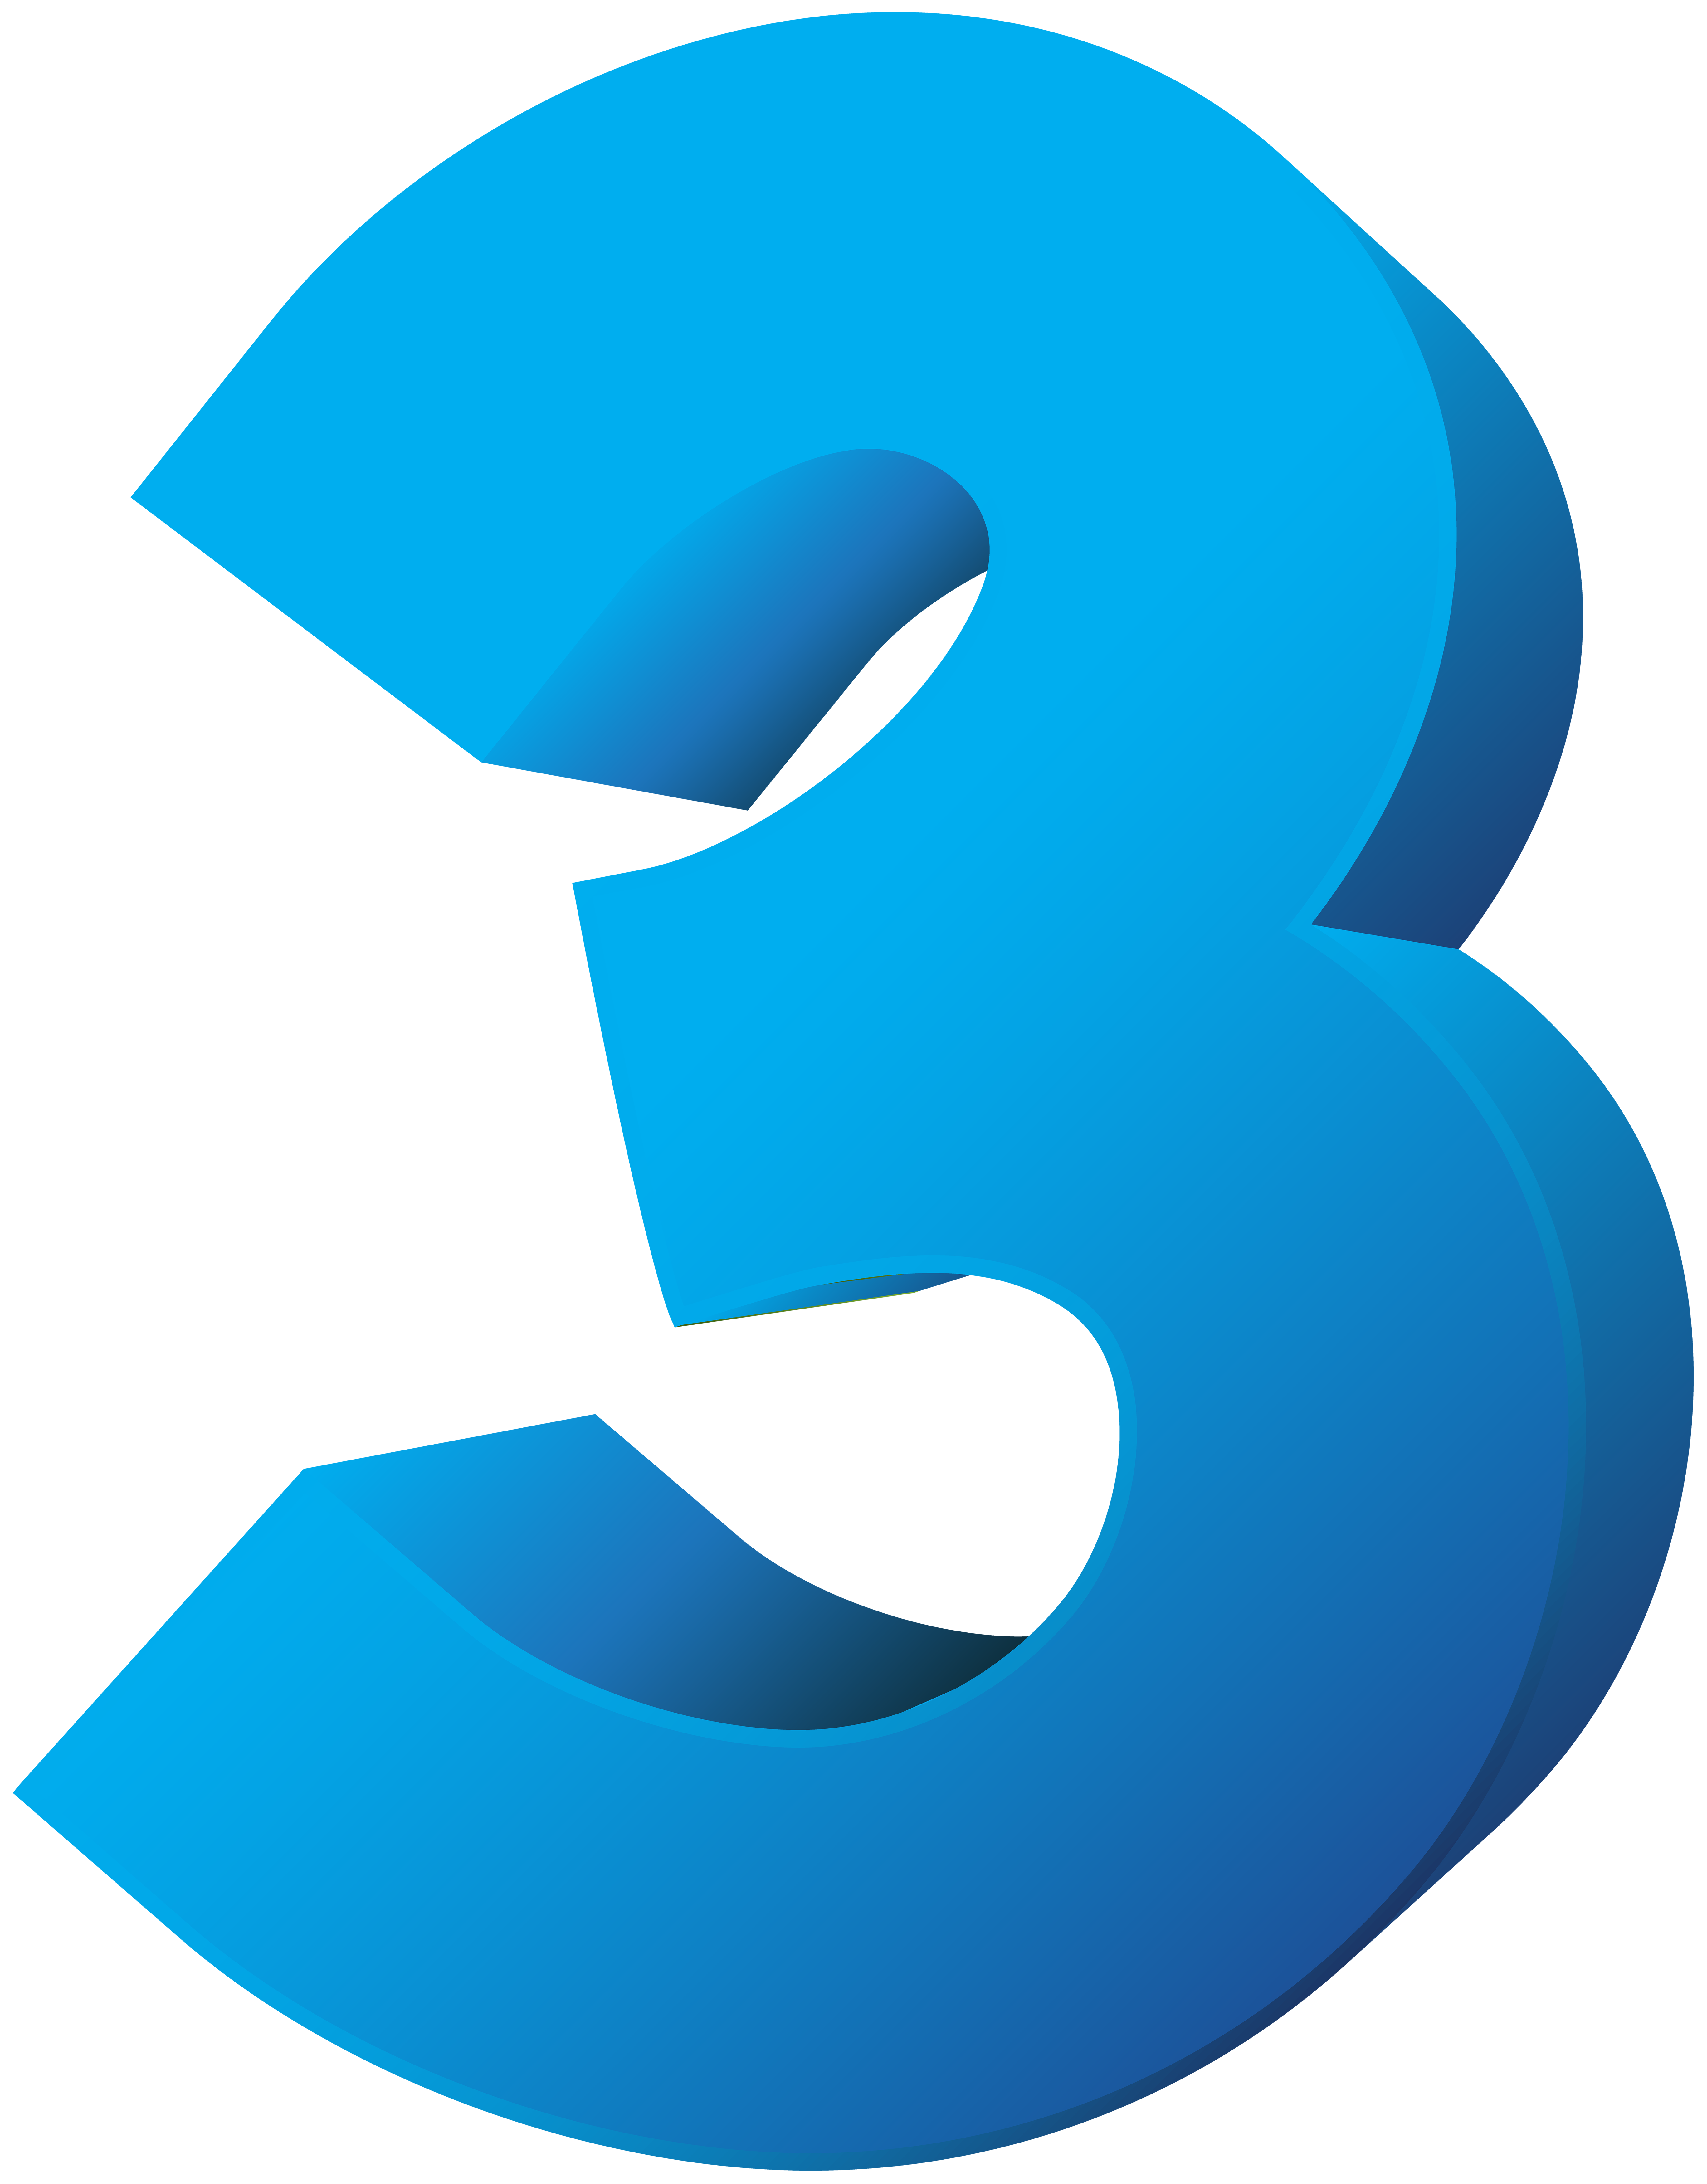 Numbers clipart three. Blue number transparent png